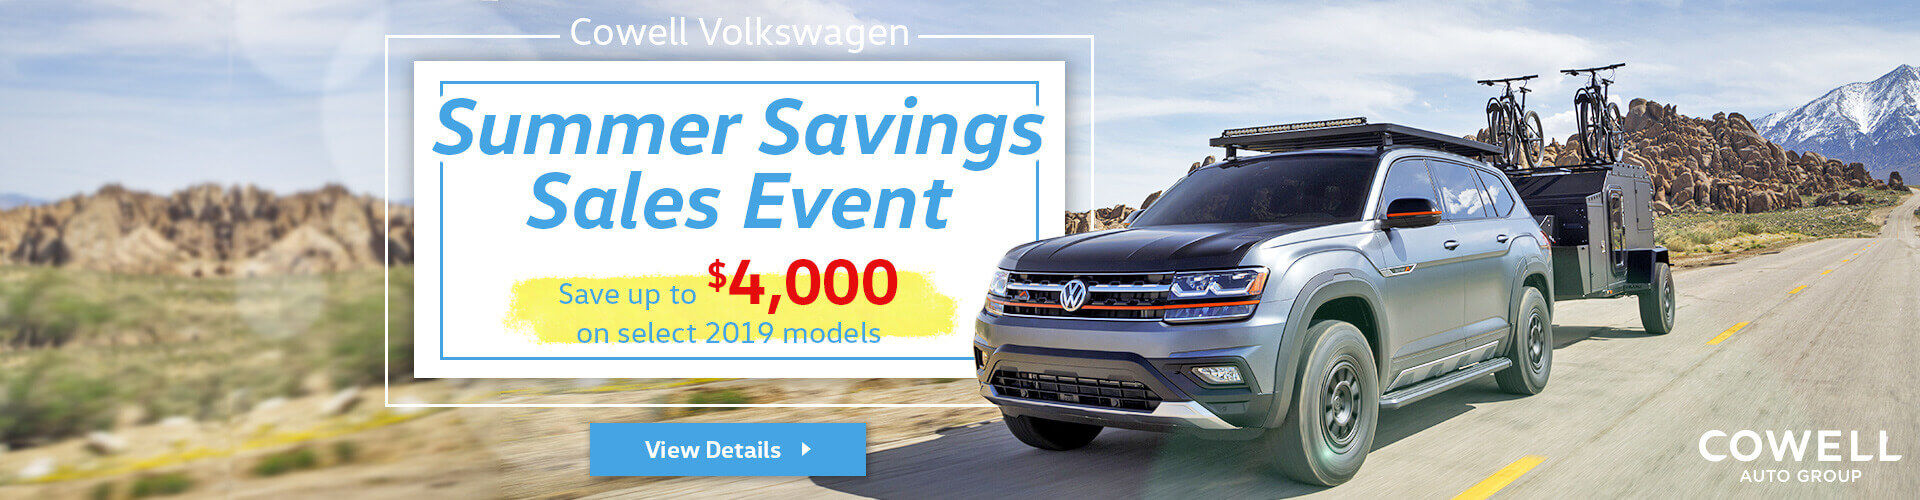 Summer Savings Sales Event